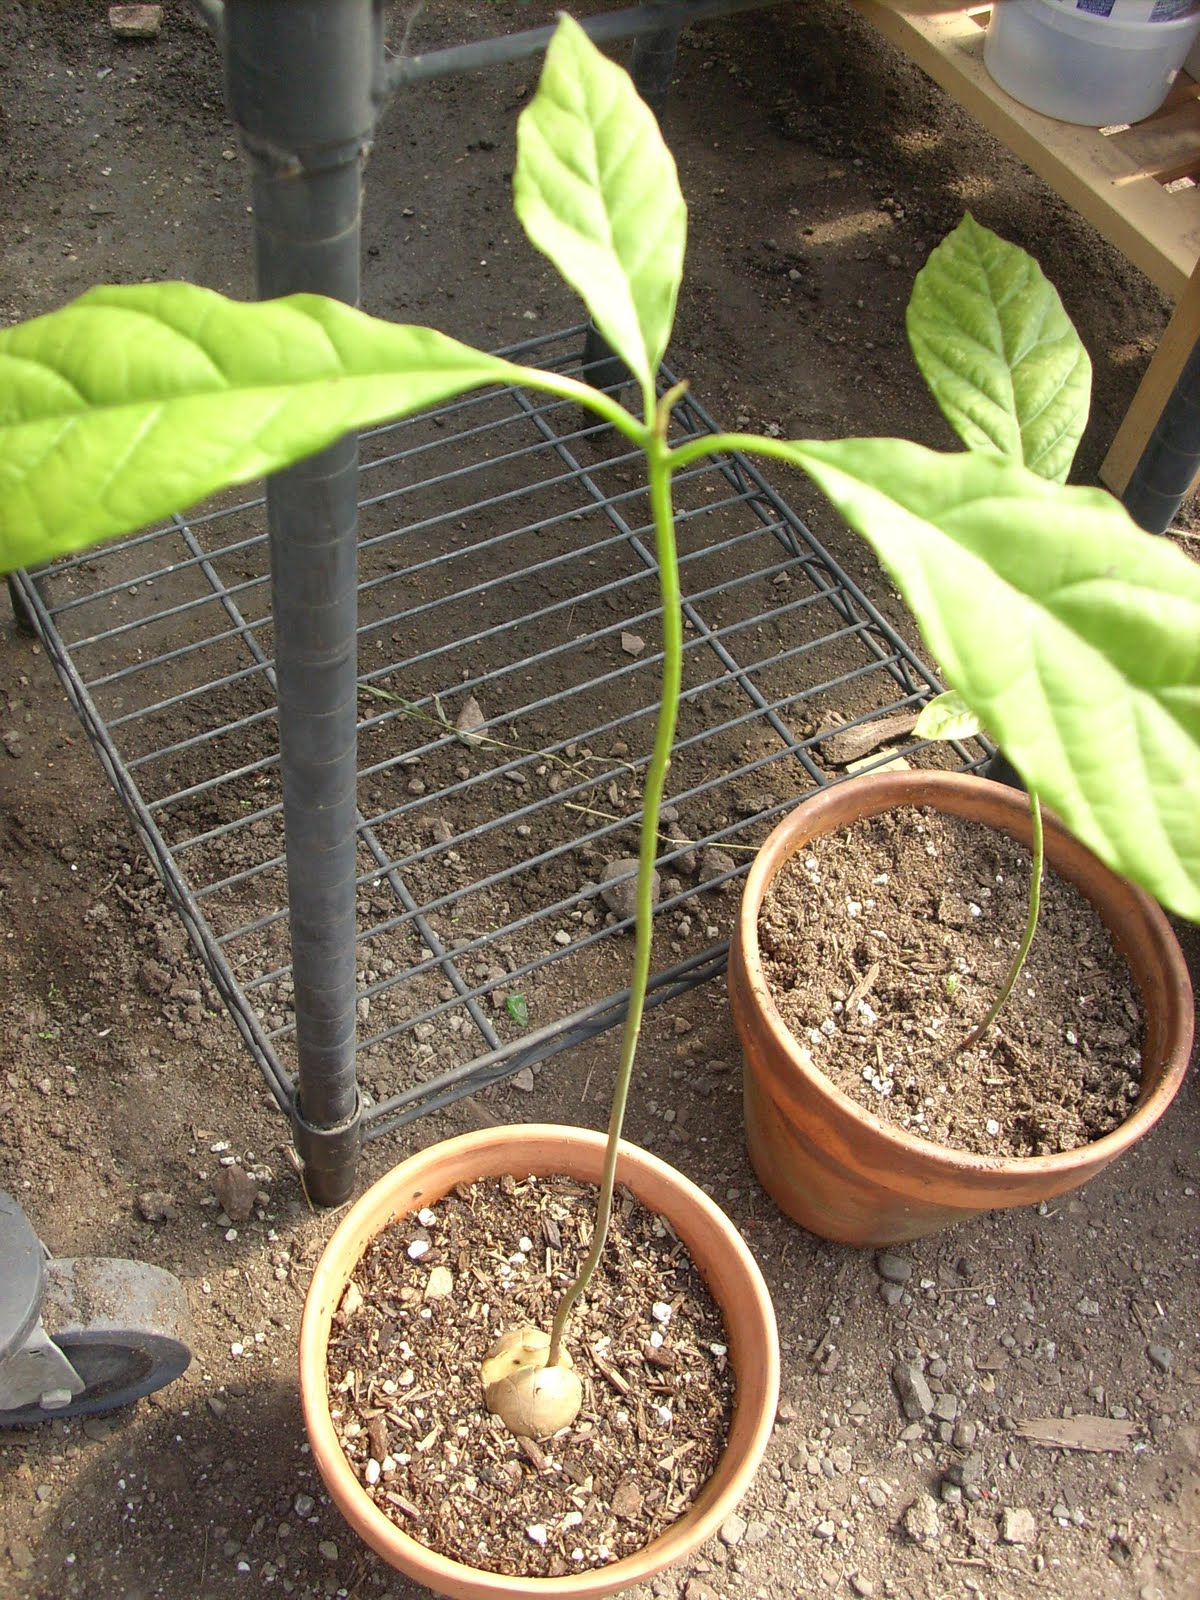 Pancho Avocado Tree http://thefreefarm.blogspot.com/2011/03/spring-forward-world-will-need-more.html